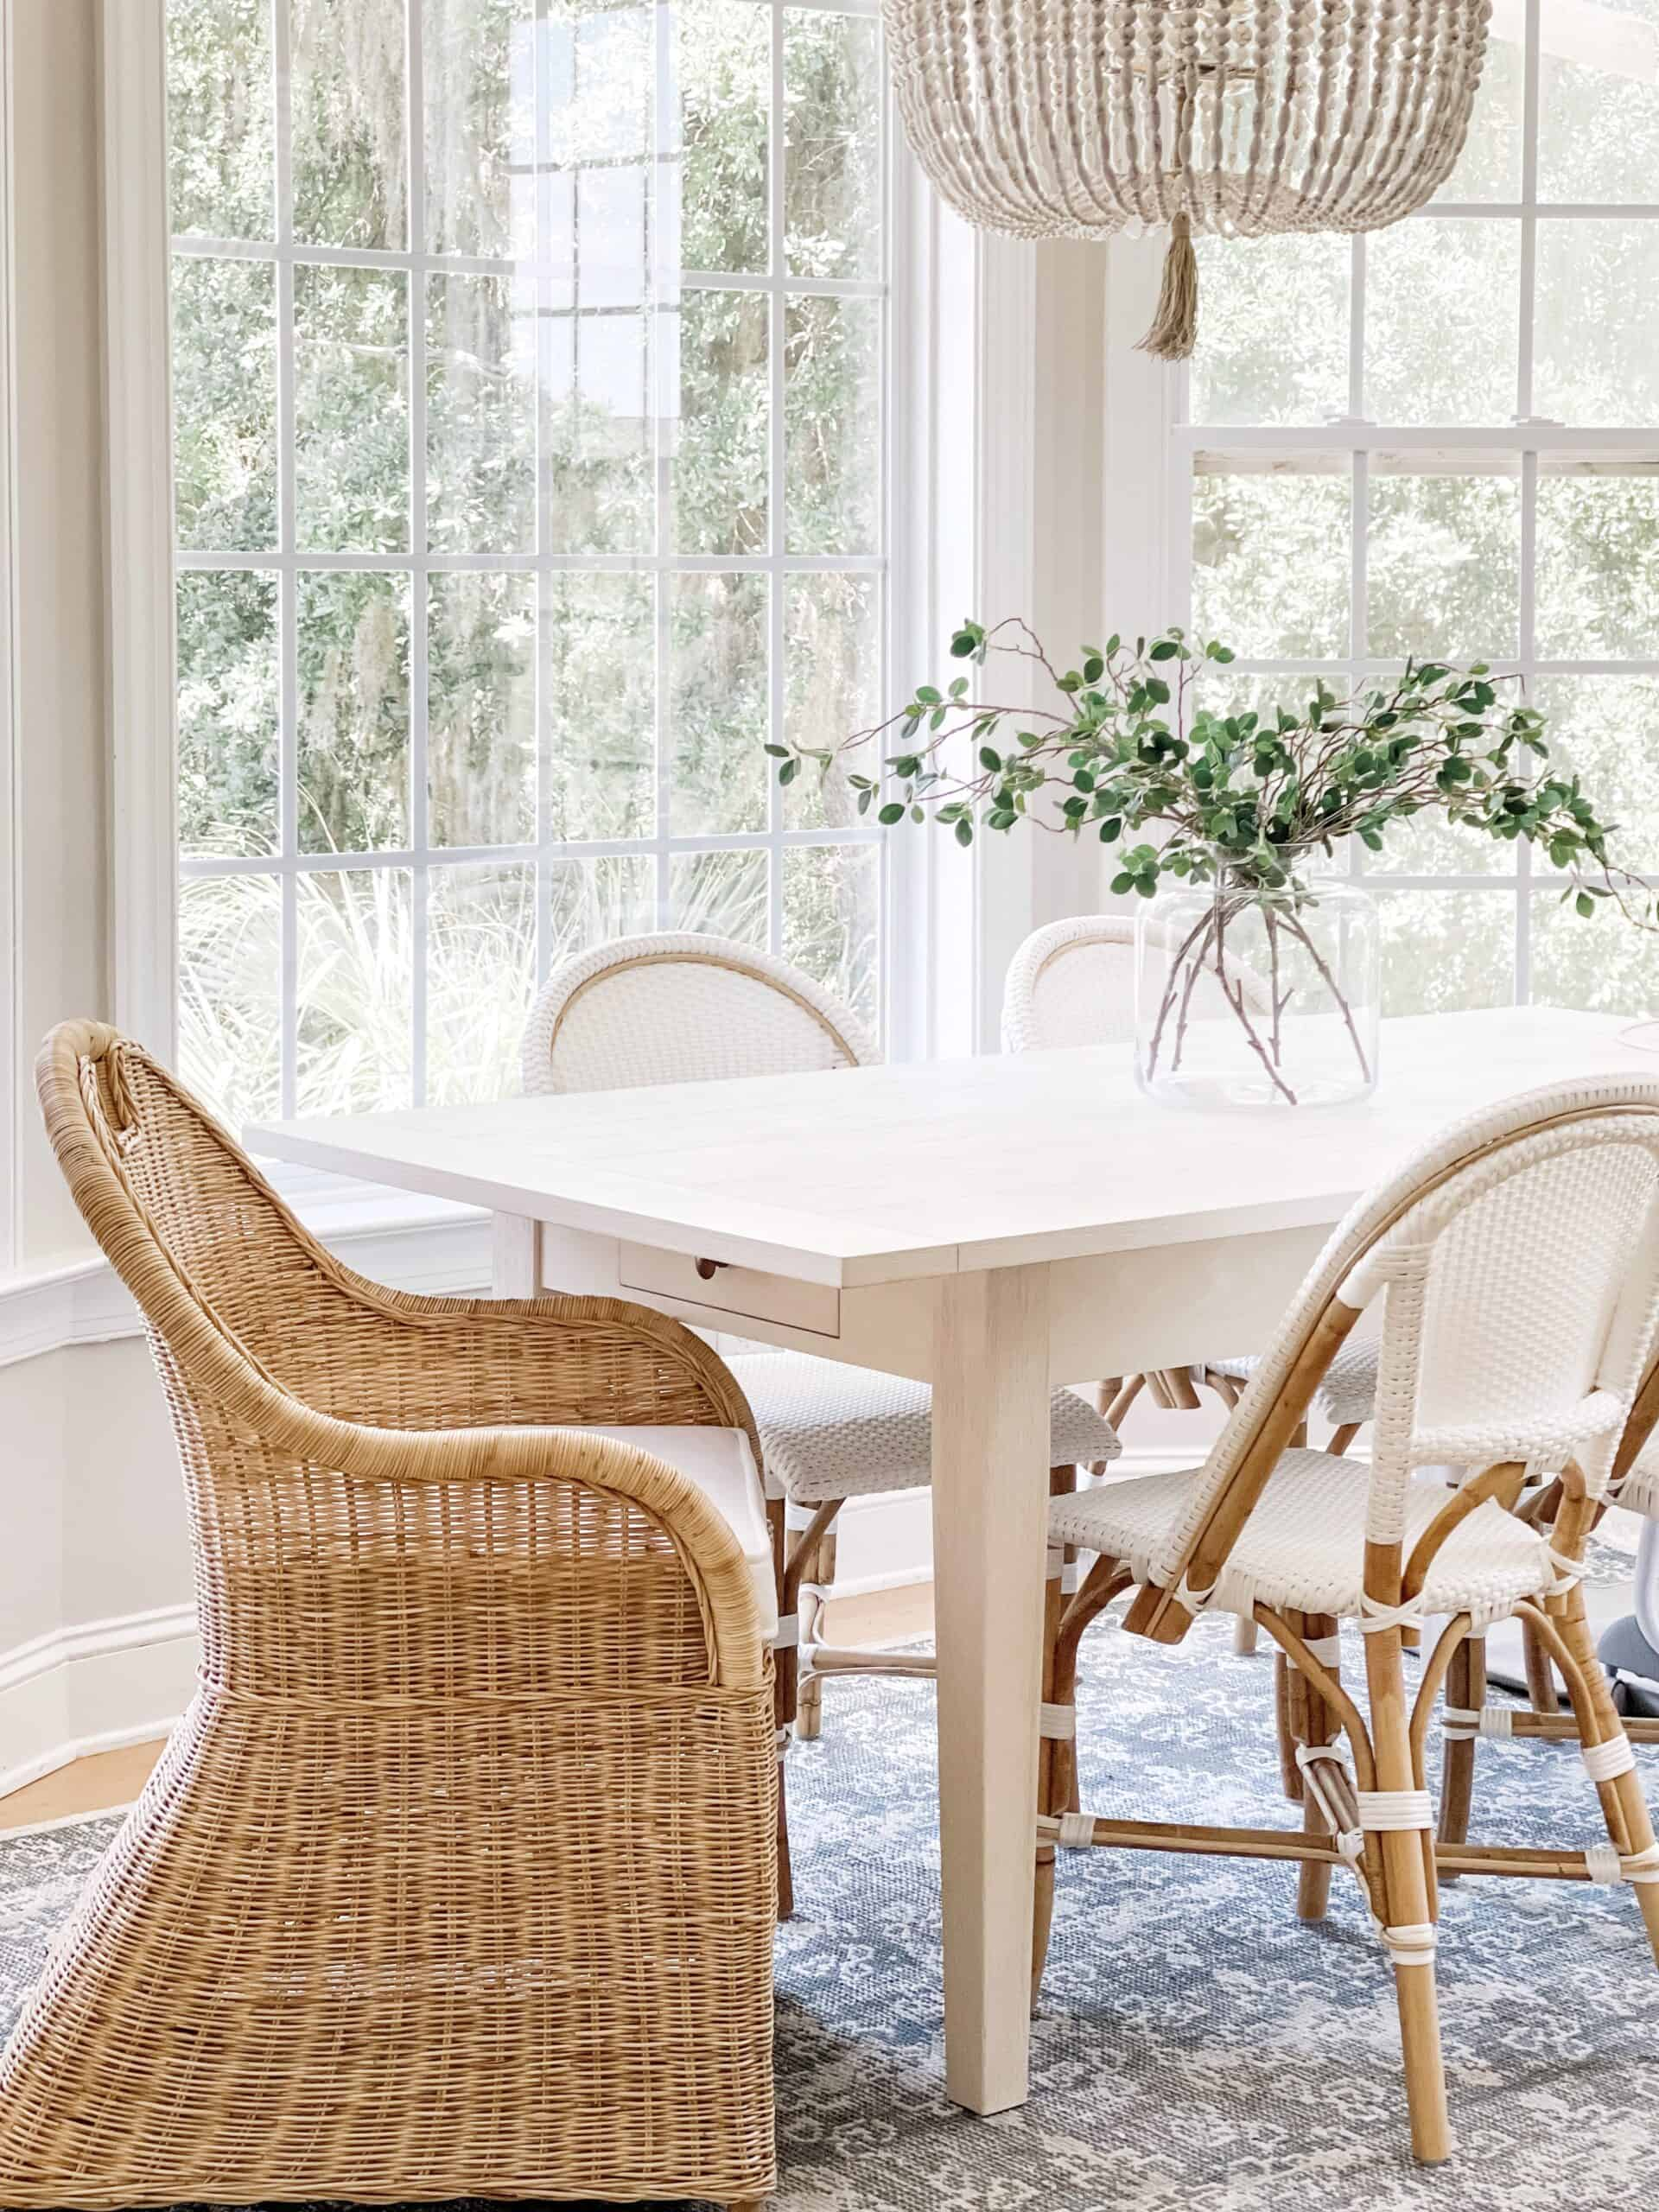 Willomere Rug in the breakfast nook.